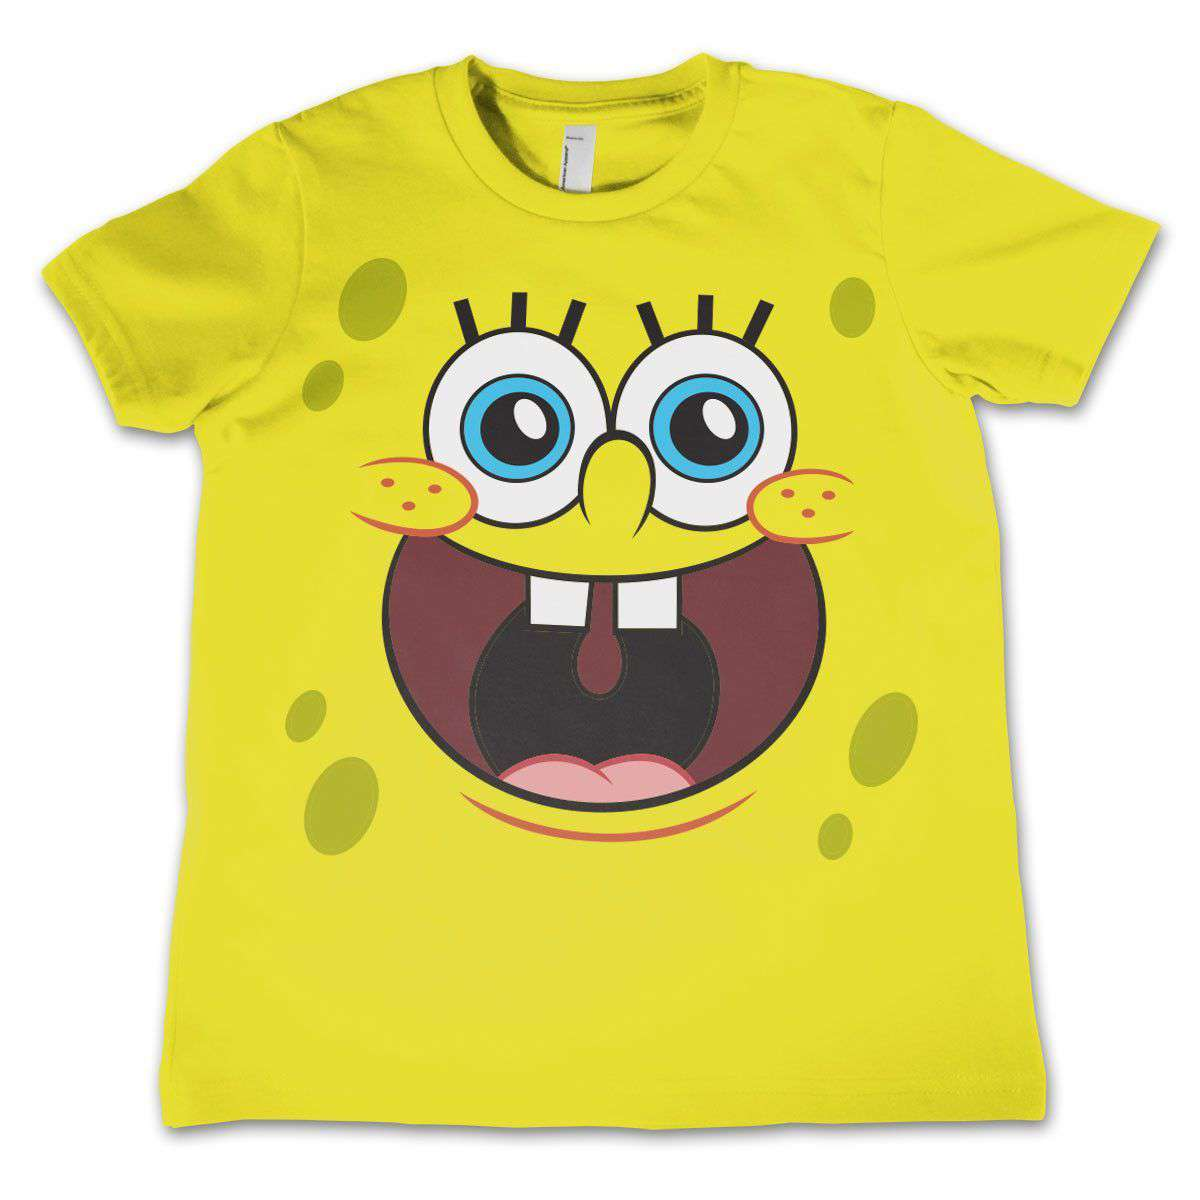 Big Face Spongebob Squarepants Kids T-Shirt